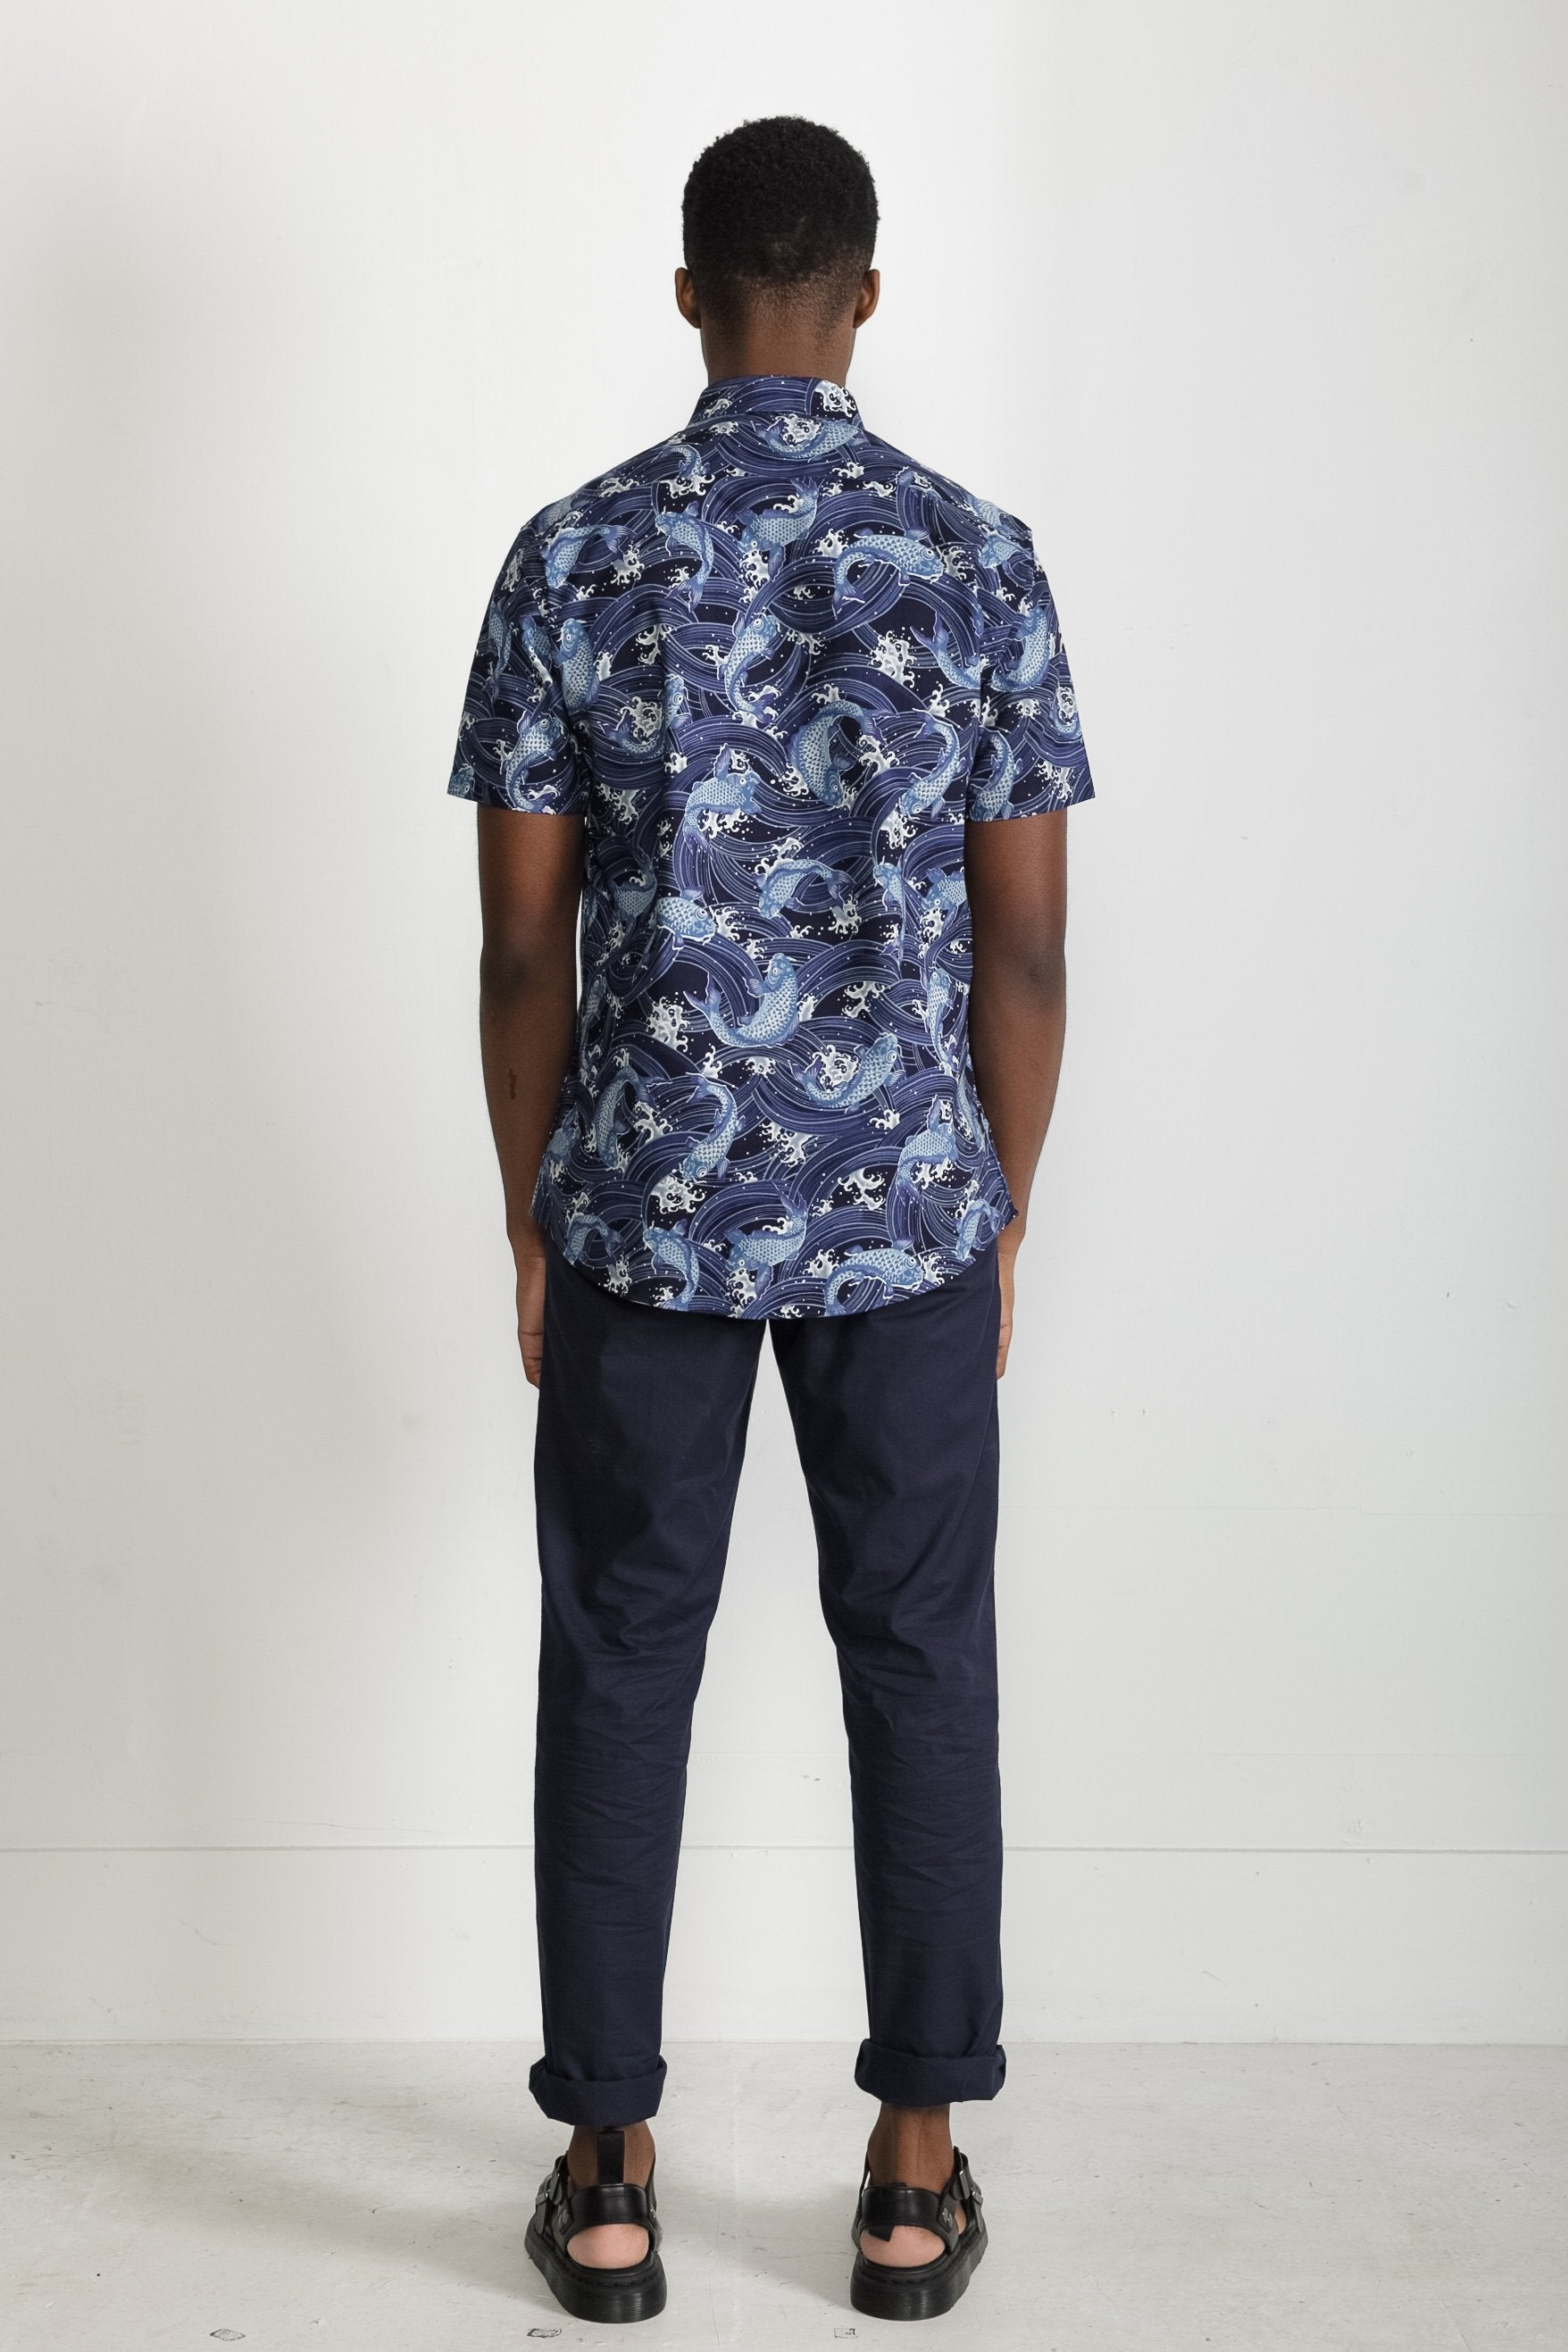 Japanese Koi Print in Navy 003